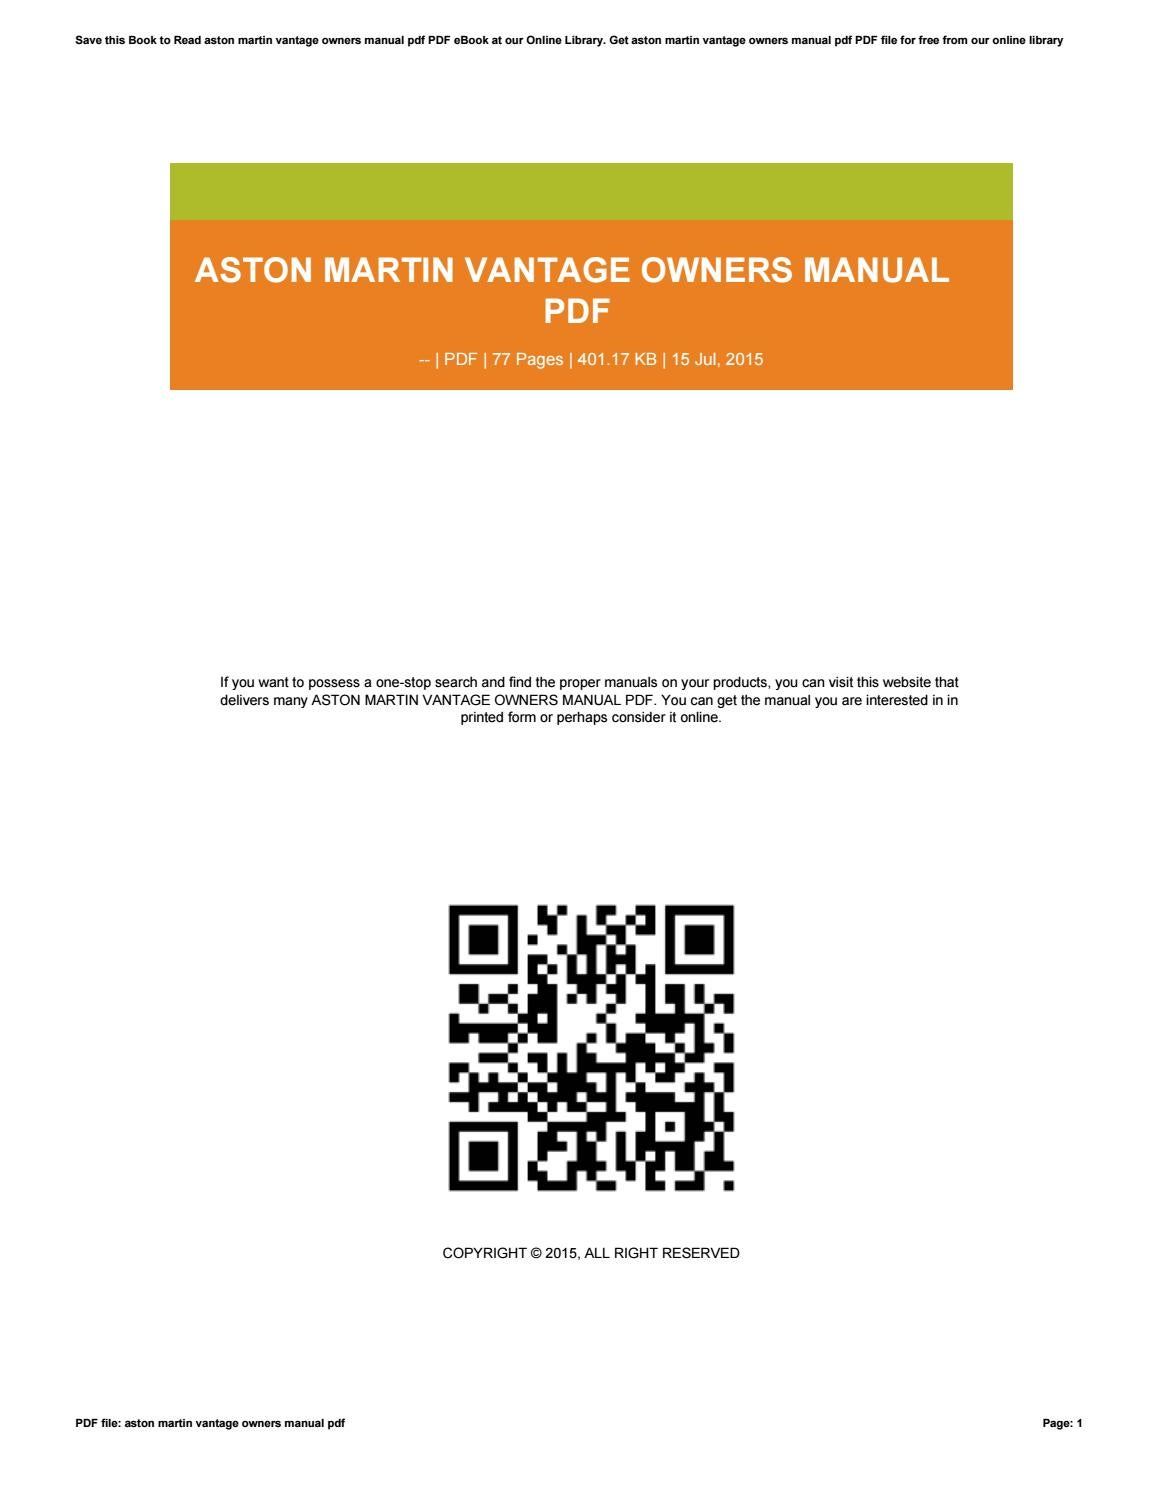 Aston martin vantage owners manual pdf by damor47koliana issuu fandeluxe Image collections